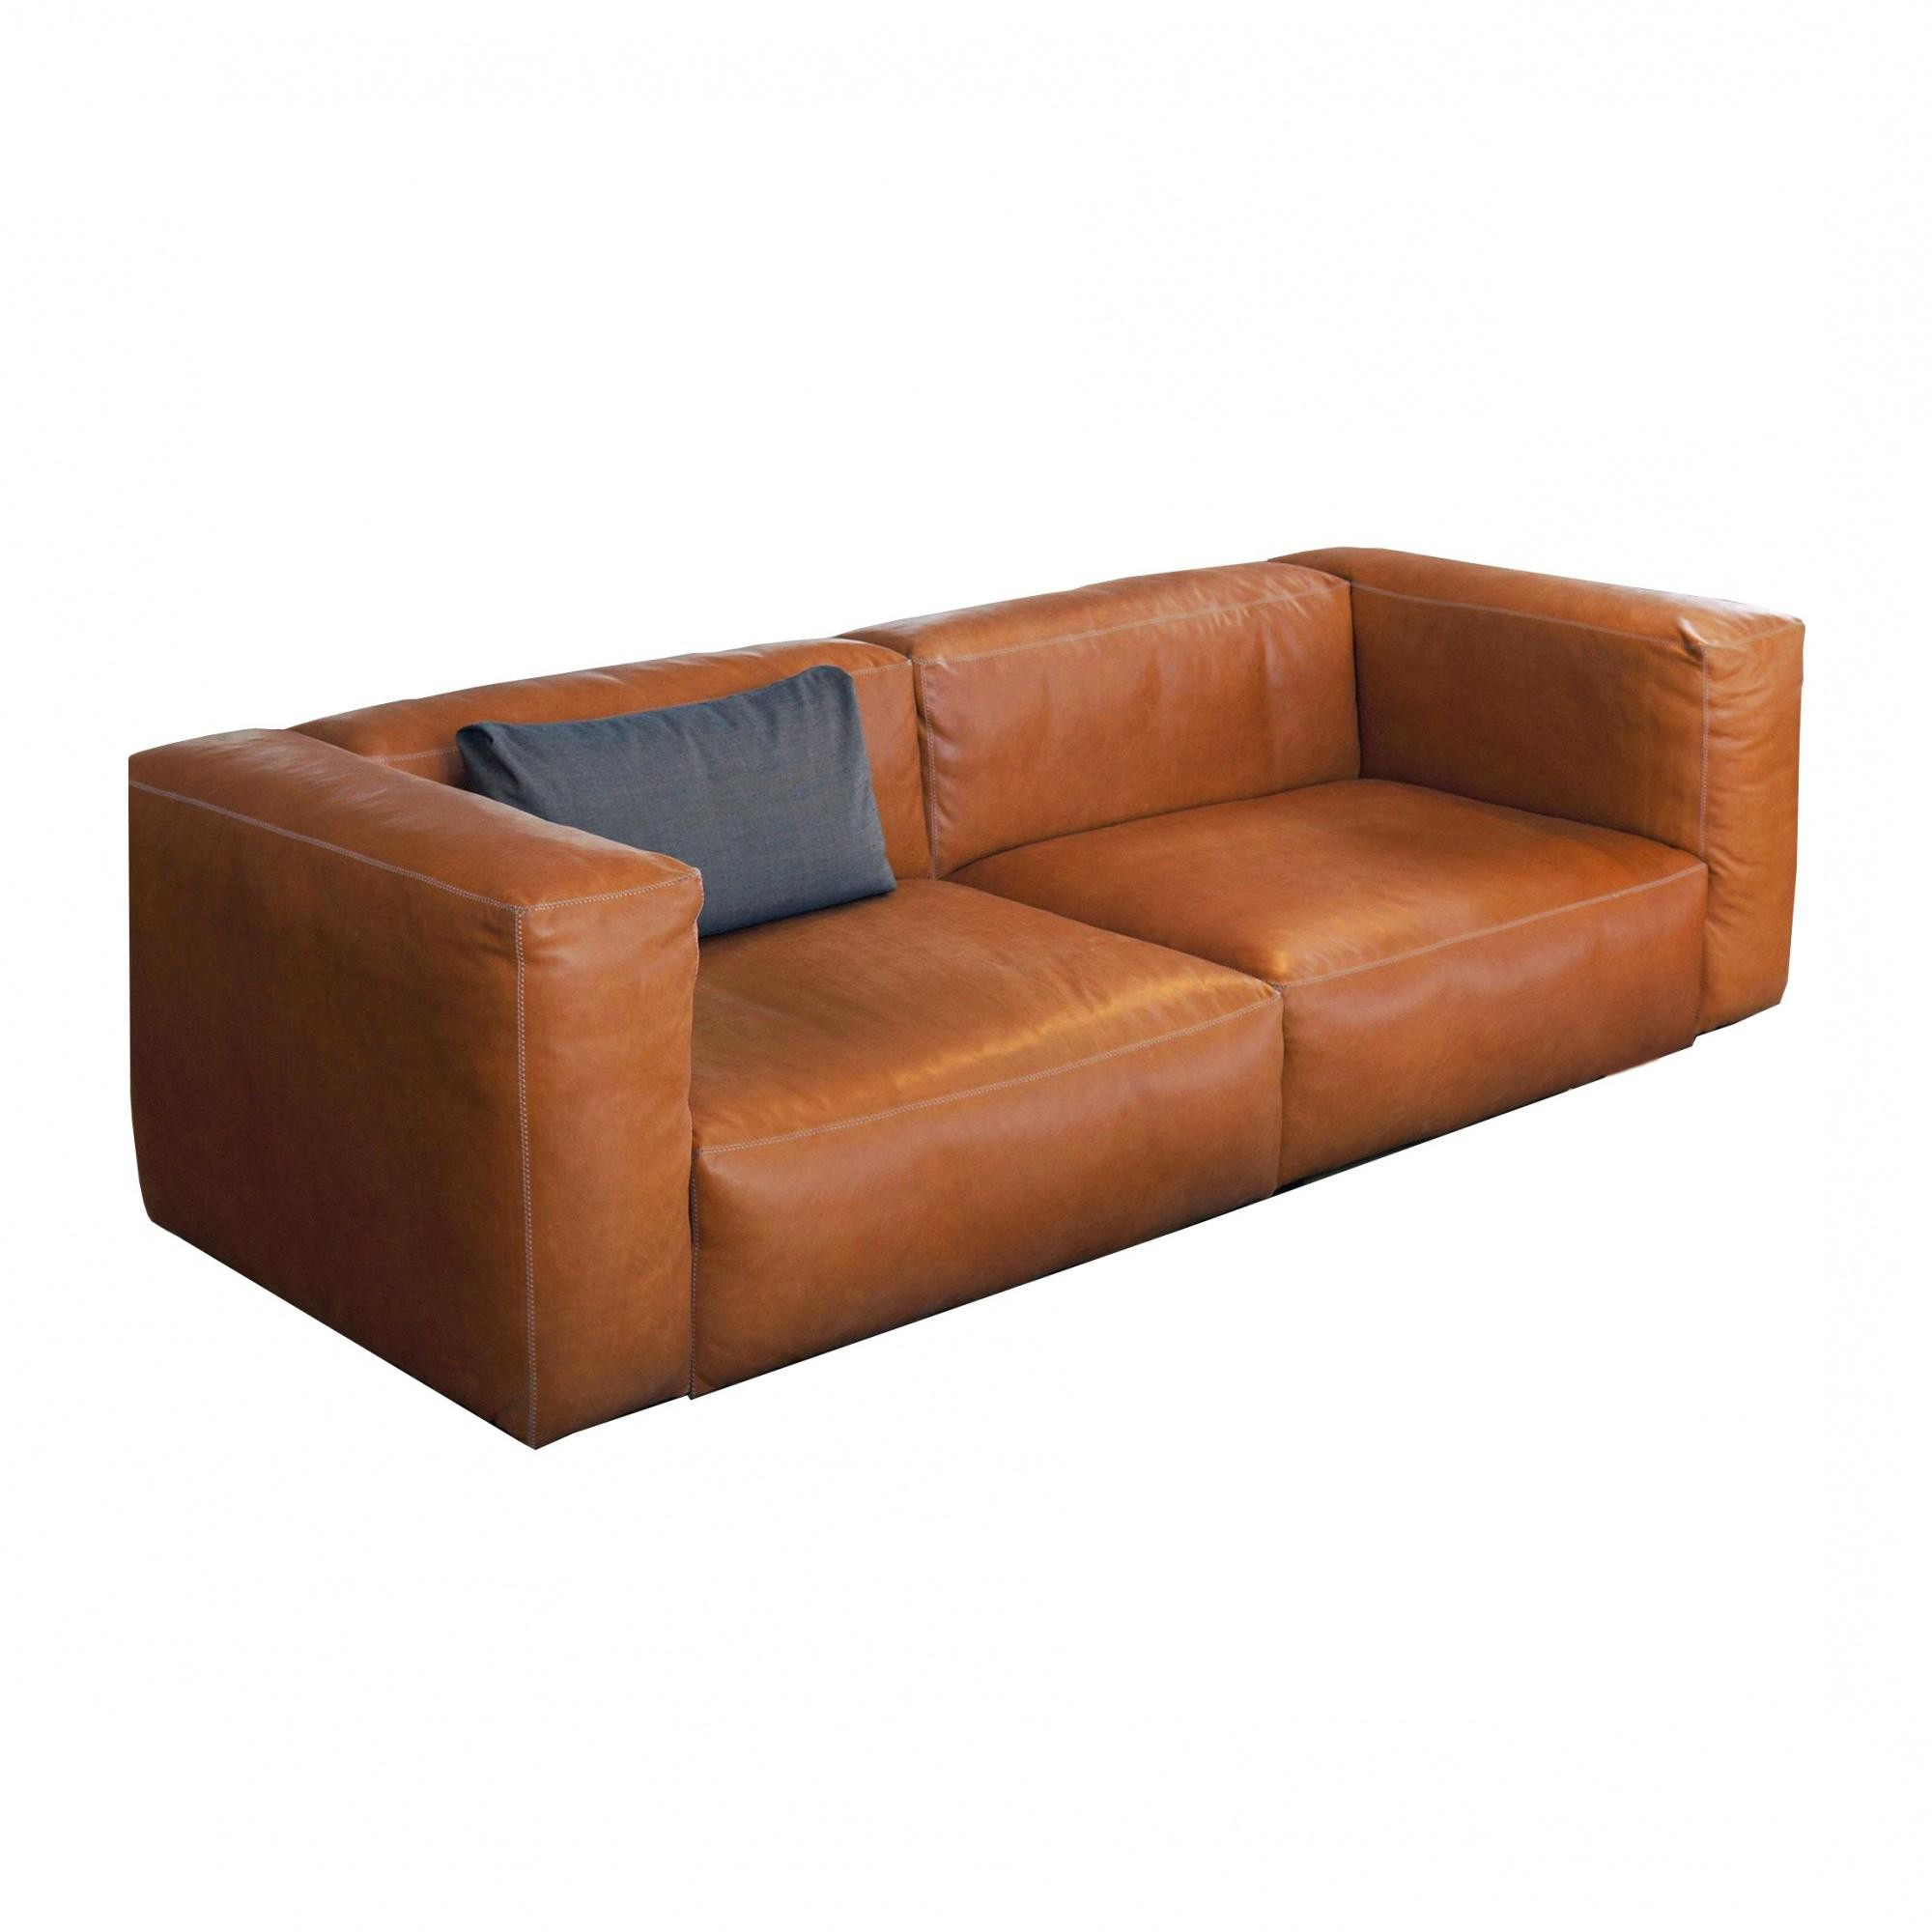 Phenomenal Mags Soft 2 5 Seater Sofa Leather Dailytribune Chair Design For Home Dailytribuneorg